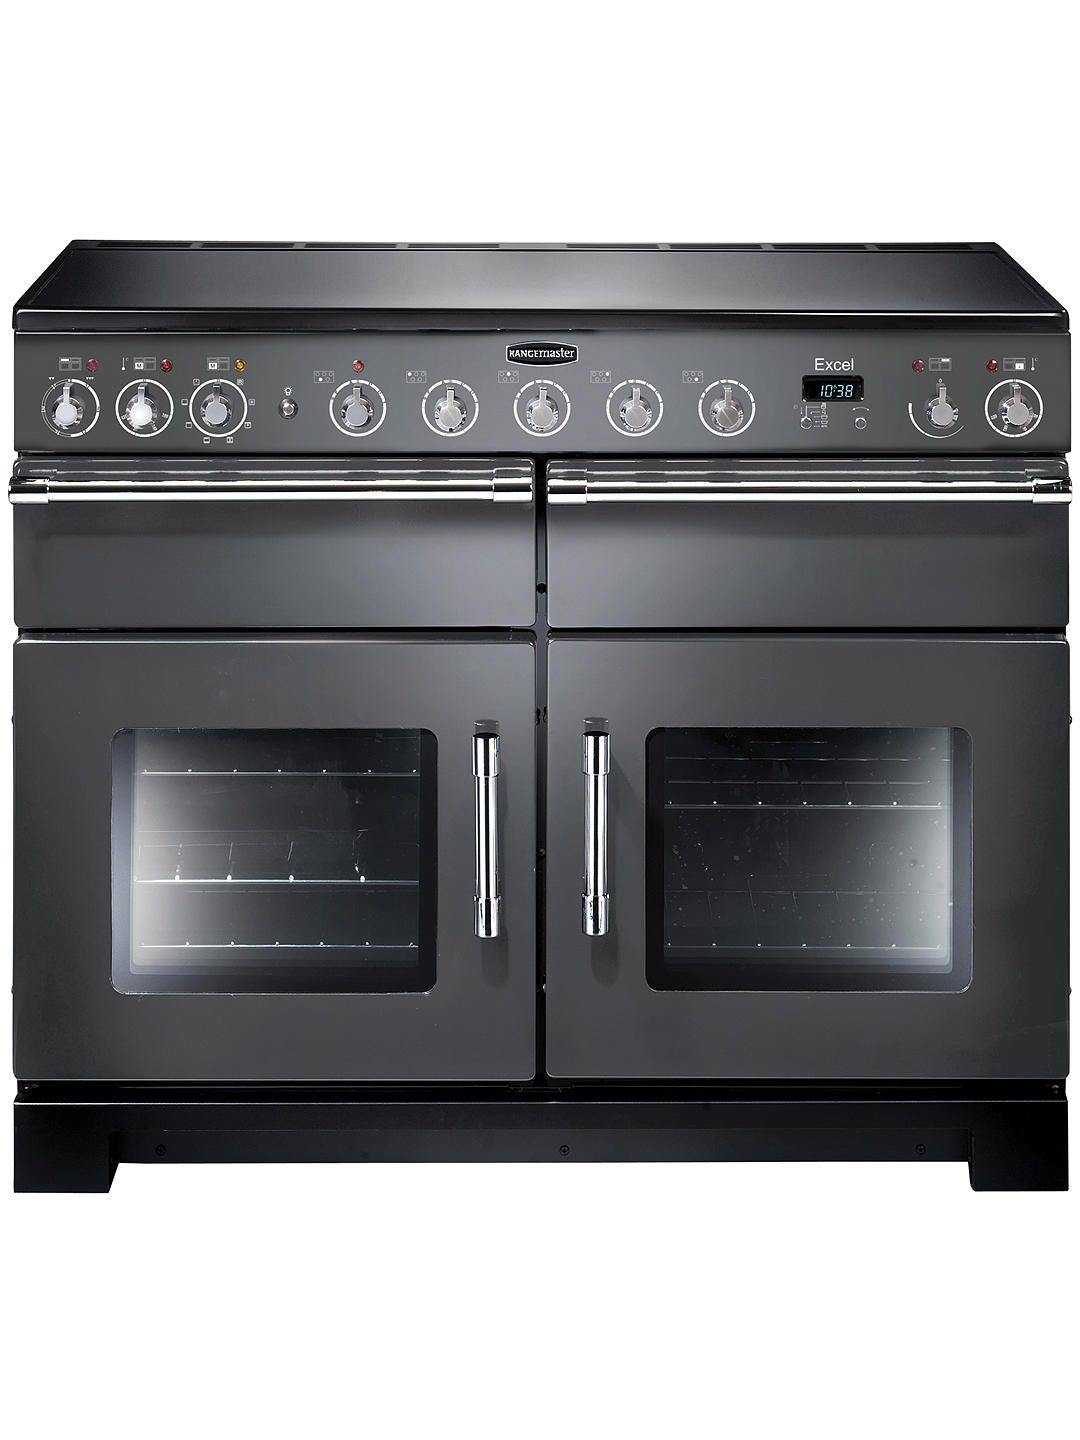 Rangemaster Excel 110 Electric Induction Range Cooker Black Chrome Trim Range Cooker Induction Range Cooker Dual Fuel Range Cookers